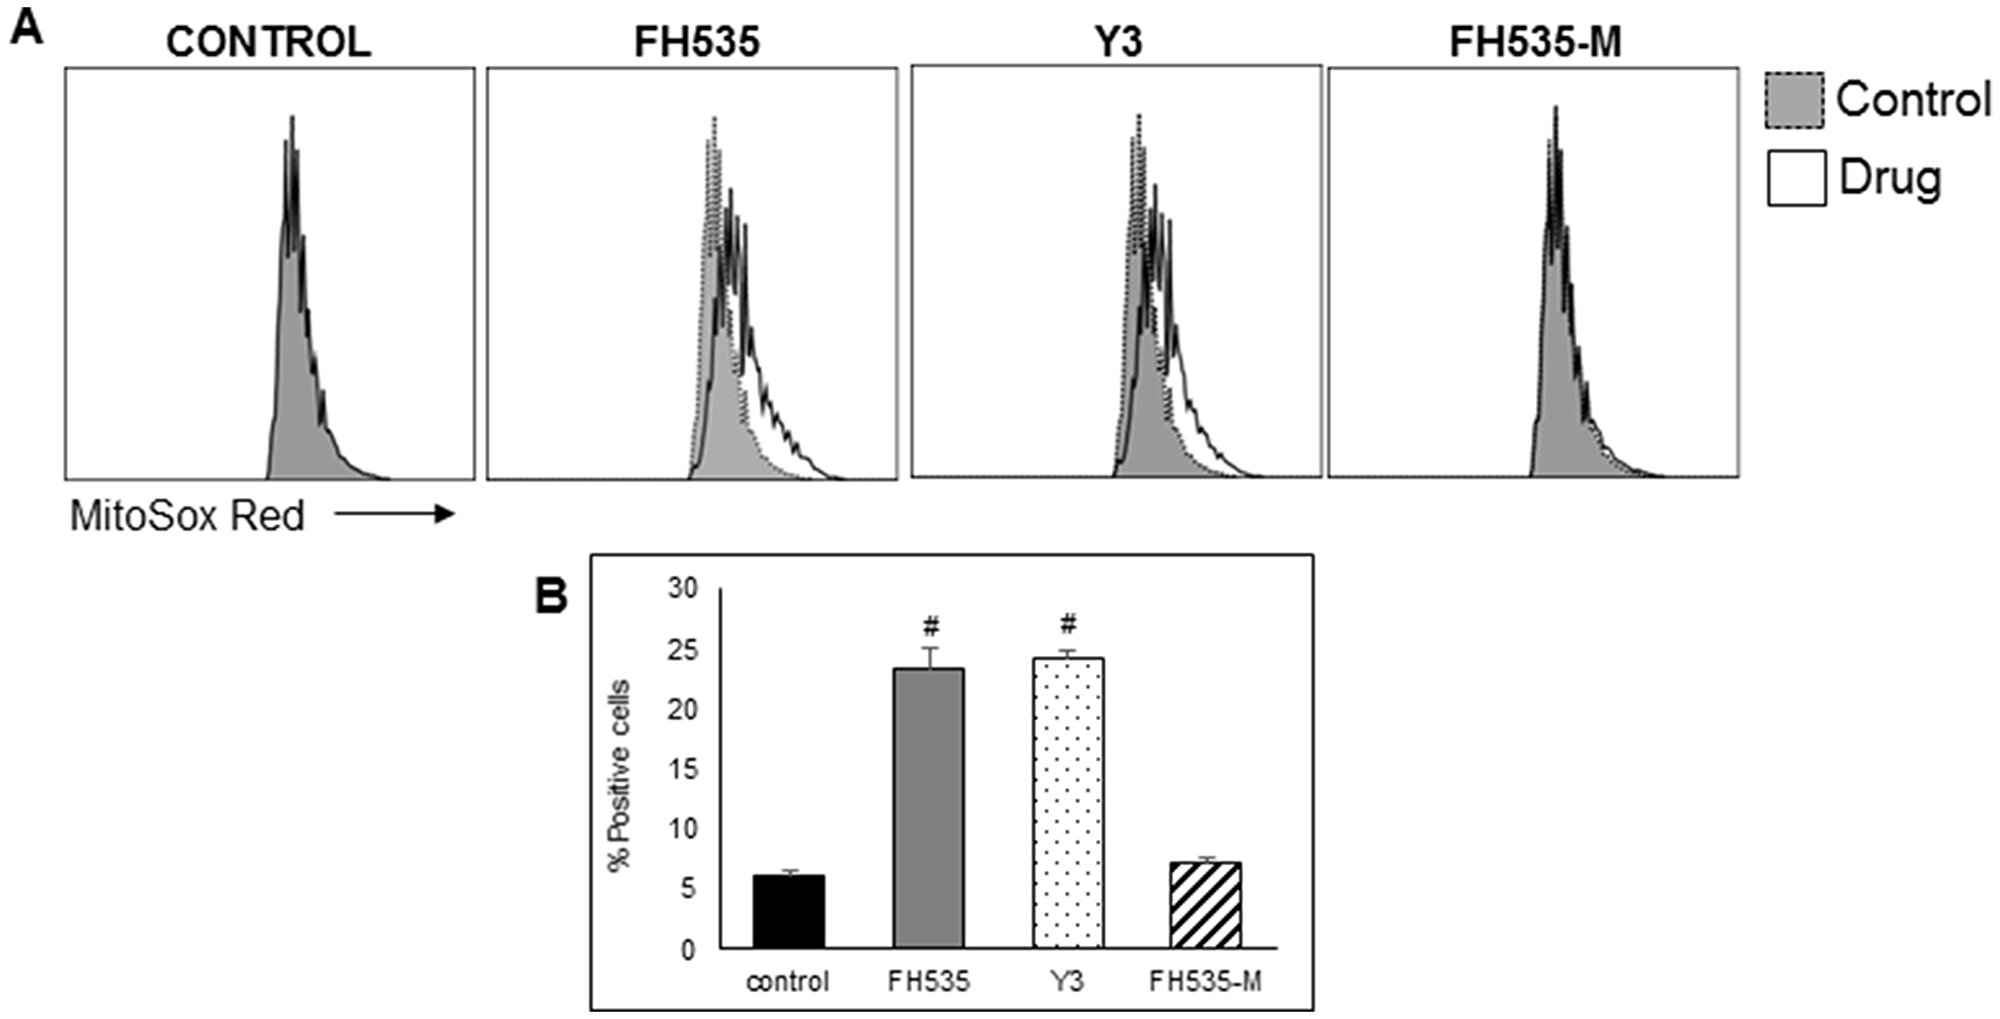 FH535 and its derivative Y3 increases mitochondrial superoxide generation in Huh7 cells.